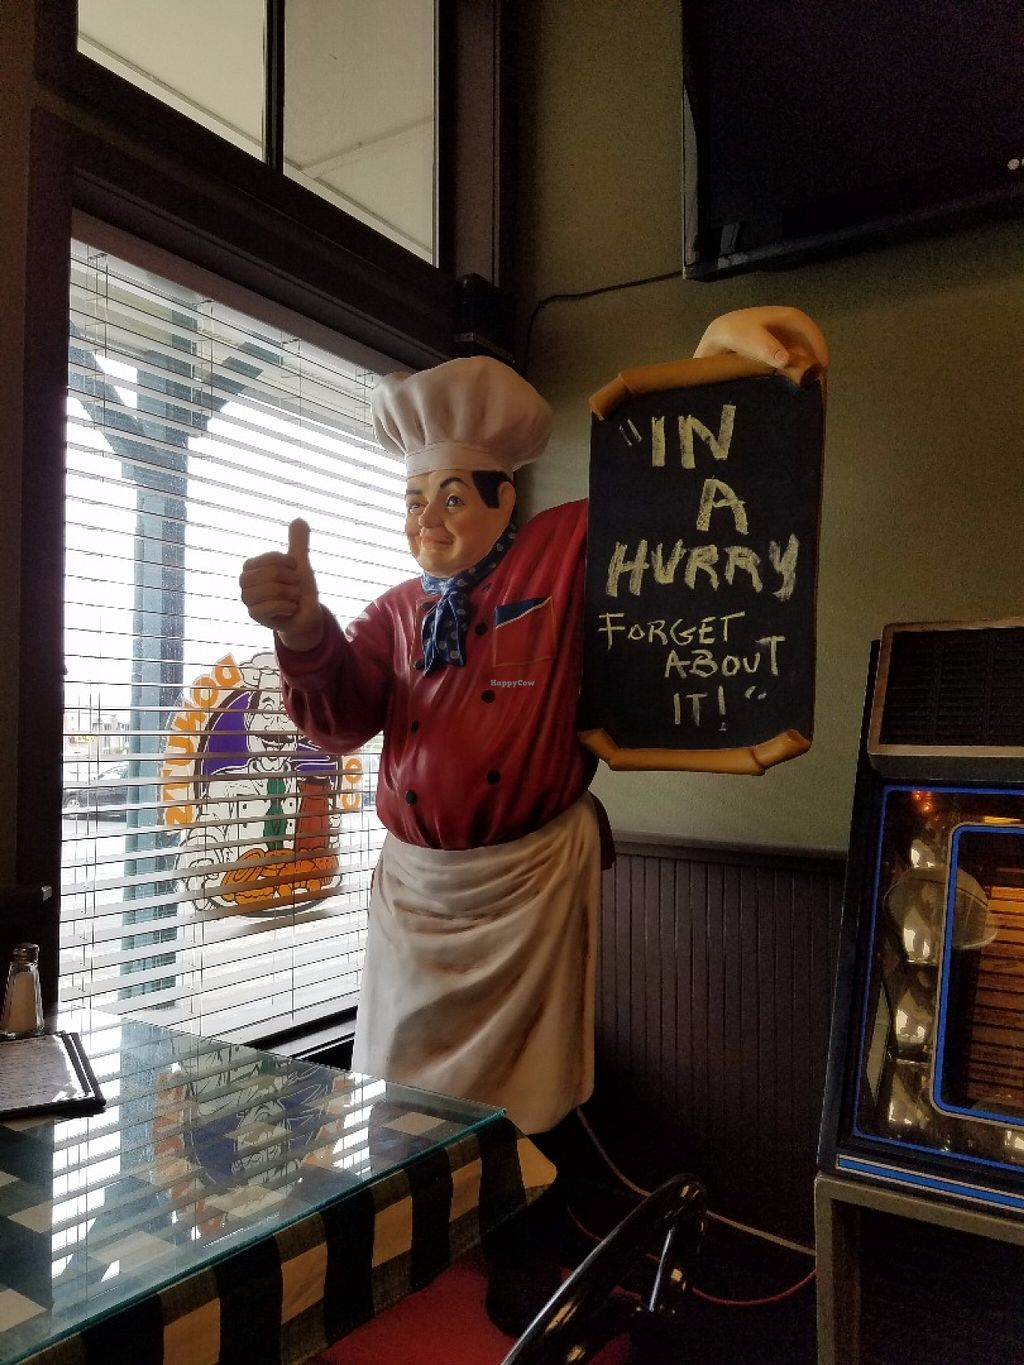 """Photo of Cousin Vinnie's NY Pizza Cafe  by <a href=""""/members/profile/KikoOla"""">KikoOla</a> <br/>Take your time <br/> May 31, 2016  - <a href='/contact/abuse/image/11808/151513'>Report</a>"""